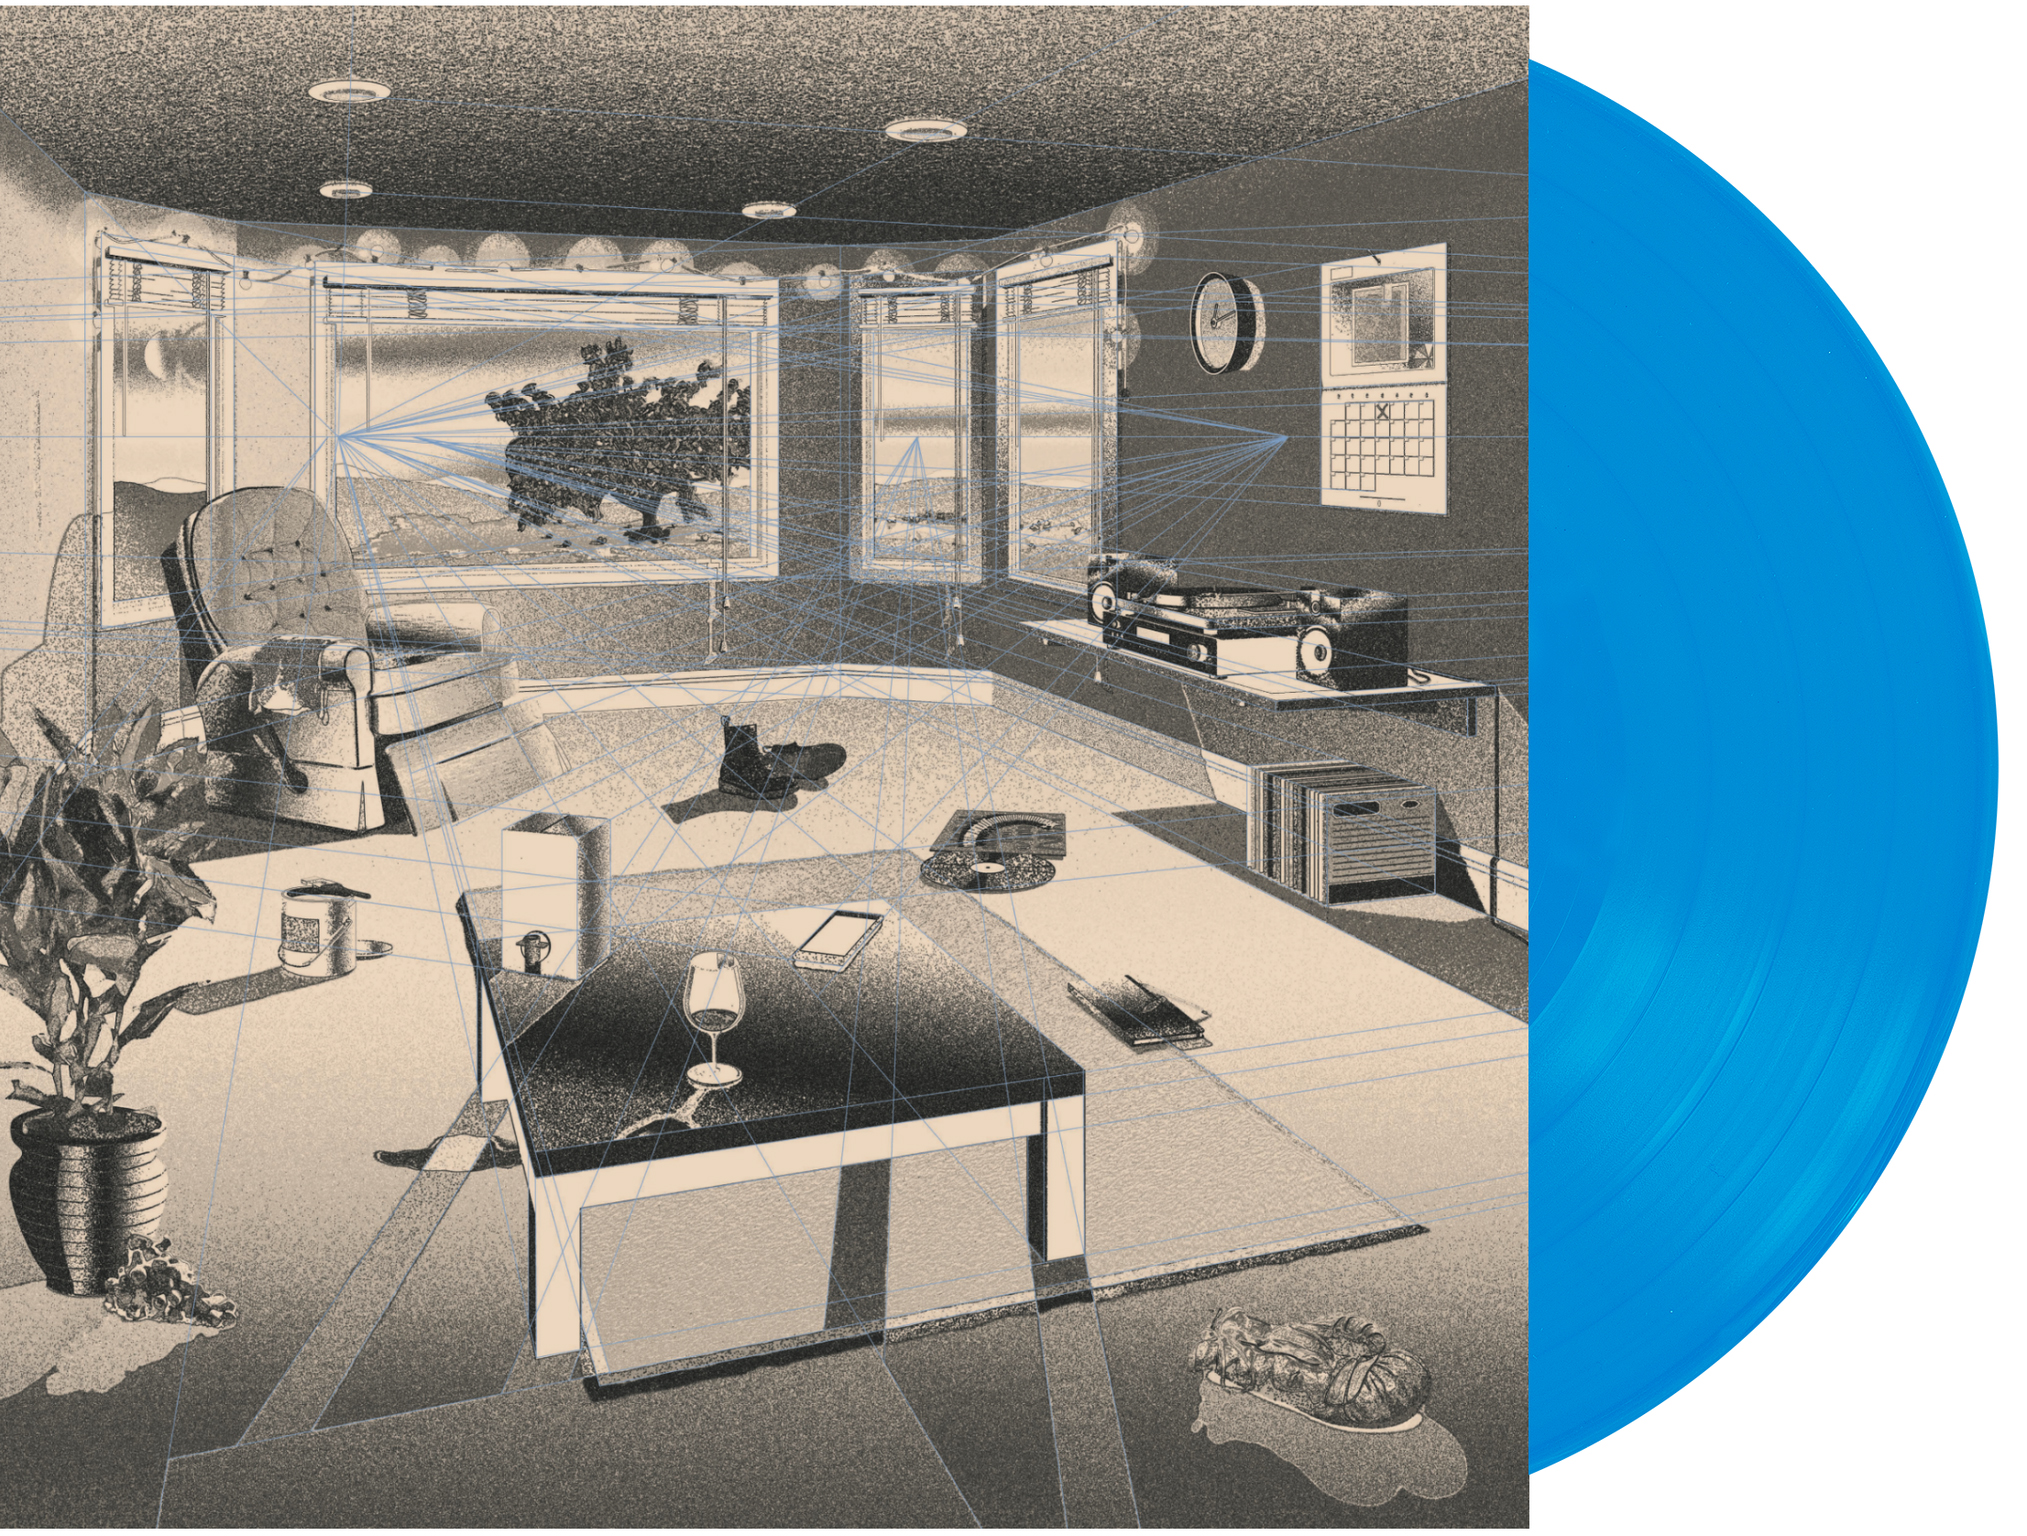 Hippo Campus Blue Vinyl (Electric Fetus exclusive) Pre-orders